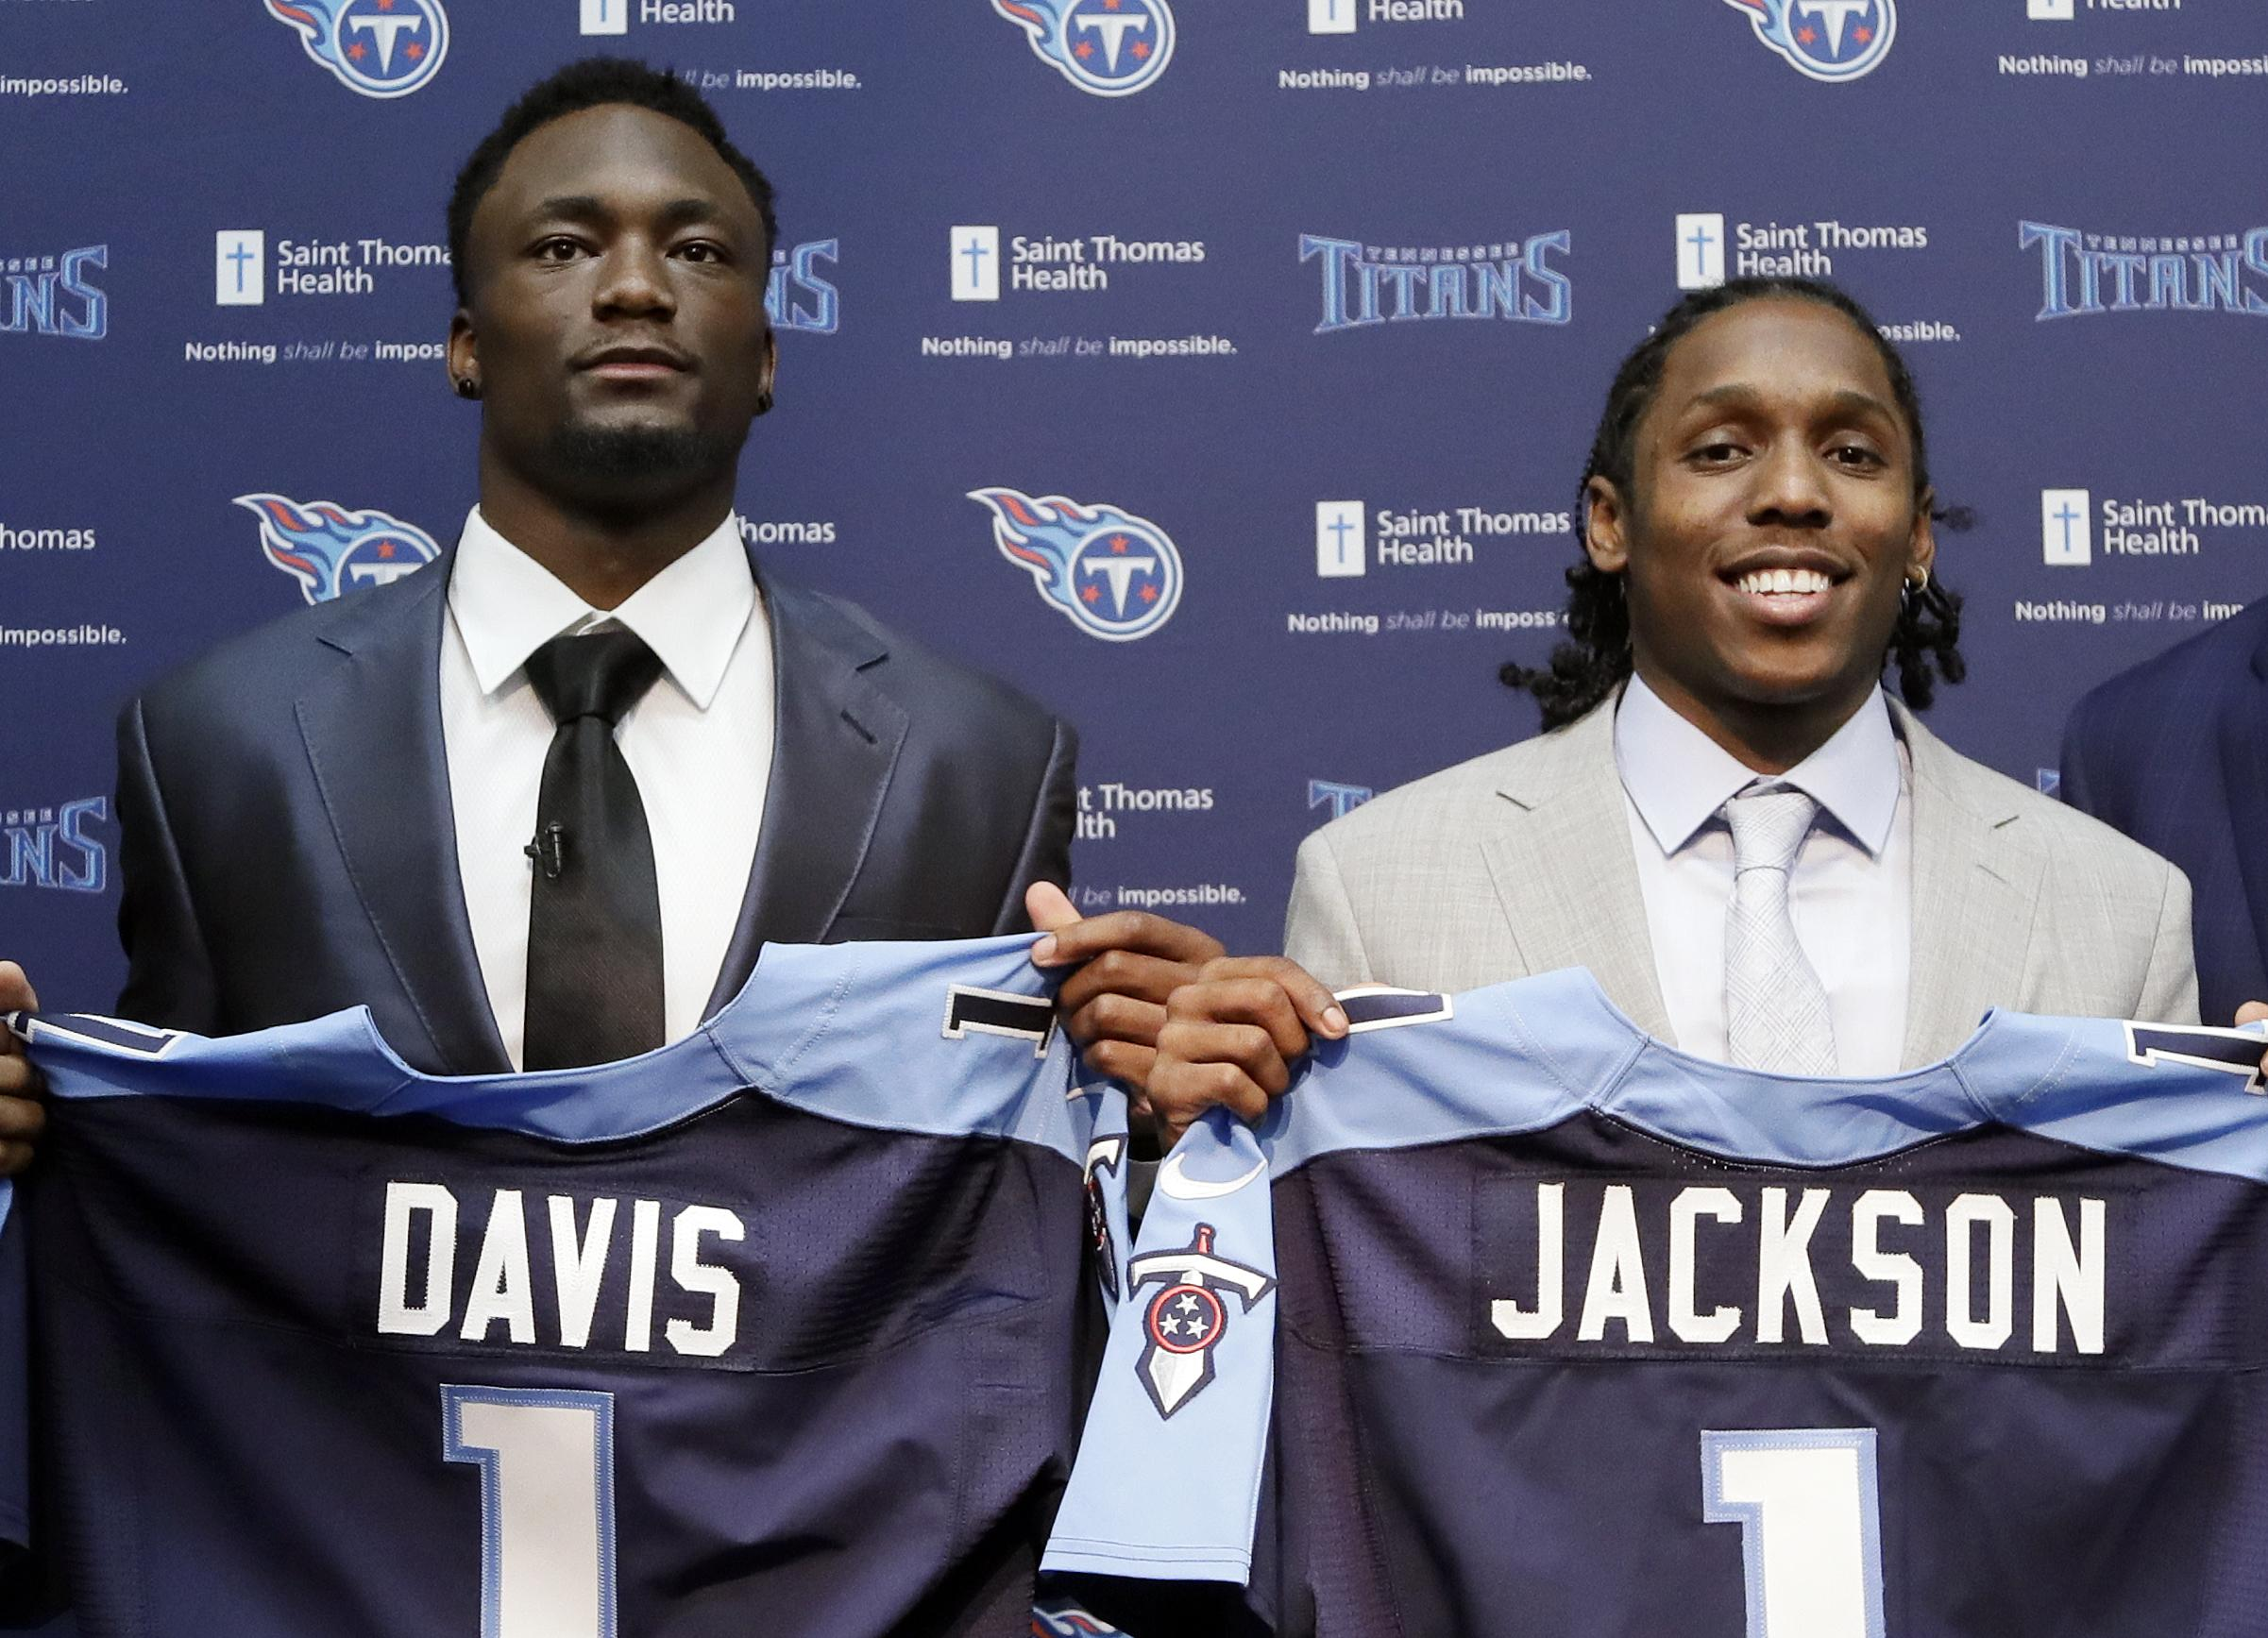 Draft_titans_football_00979